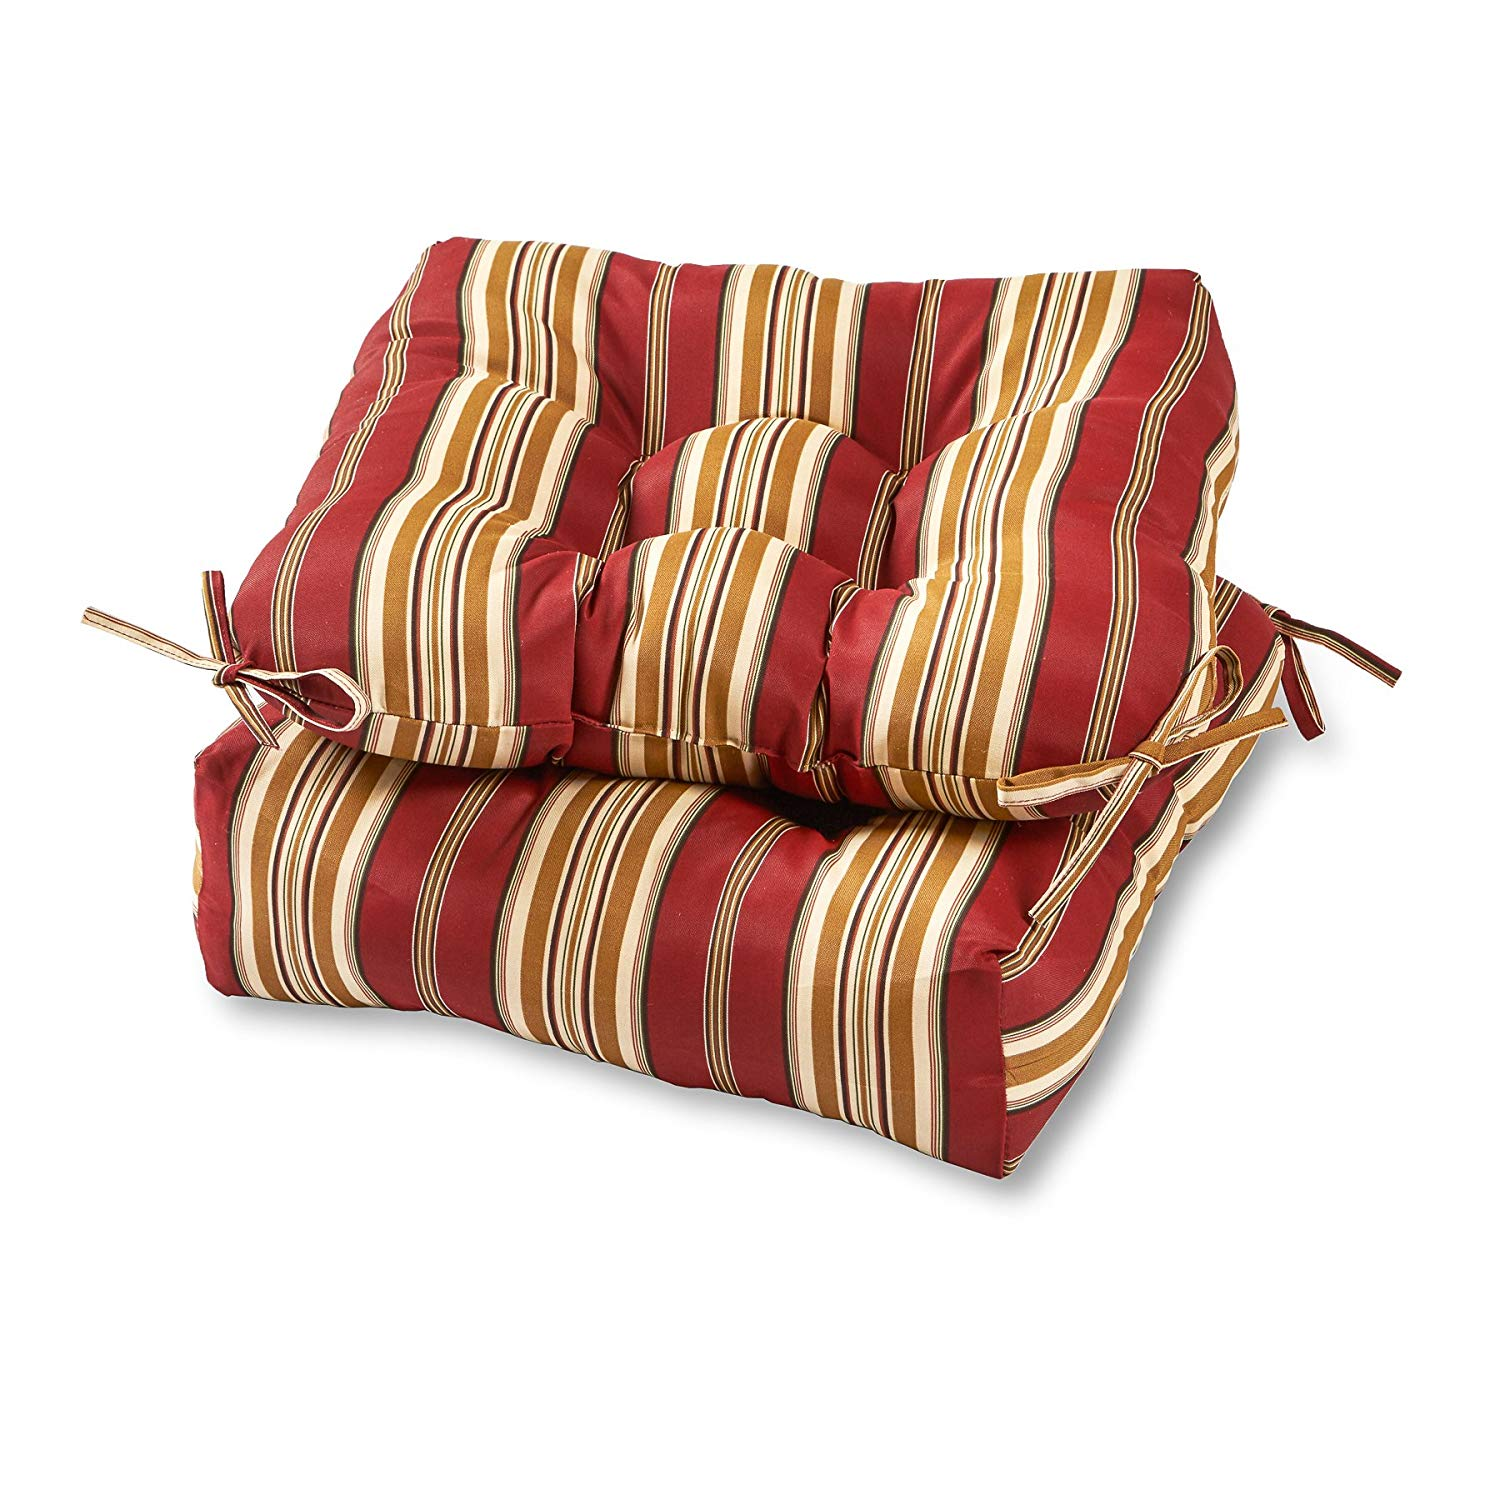 chair cushions amazon.com: greendale home fashions 20-inch outdoor chair cushion (set of LZKQHFJ